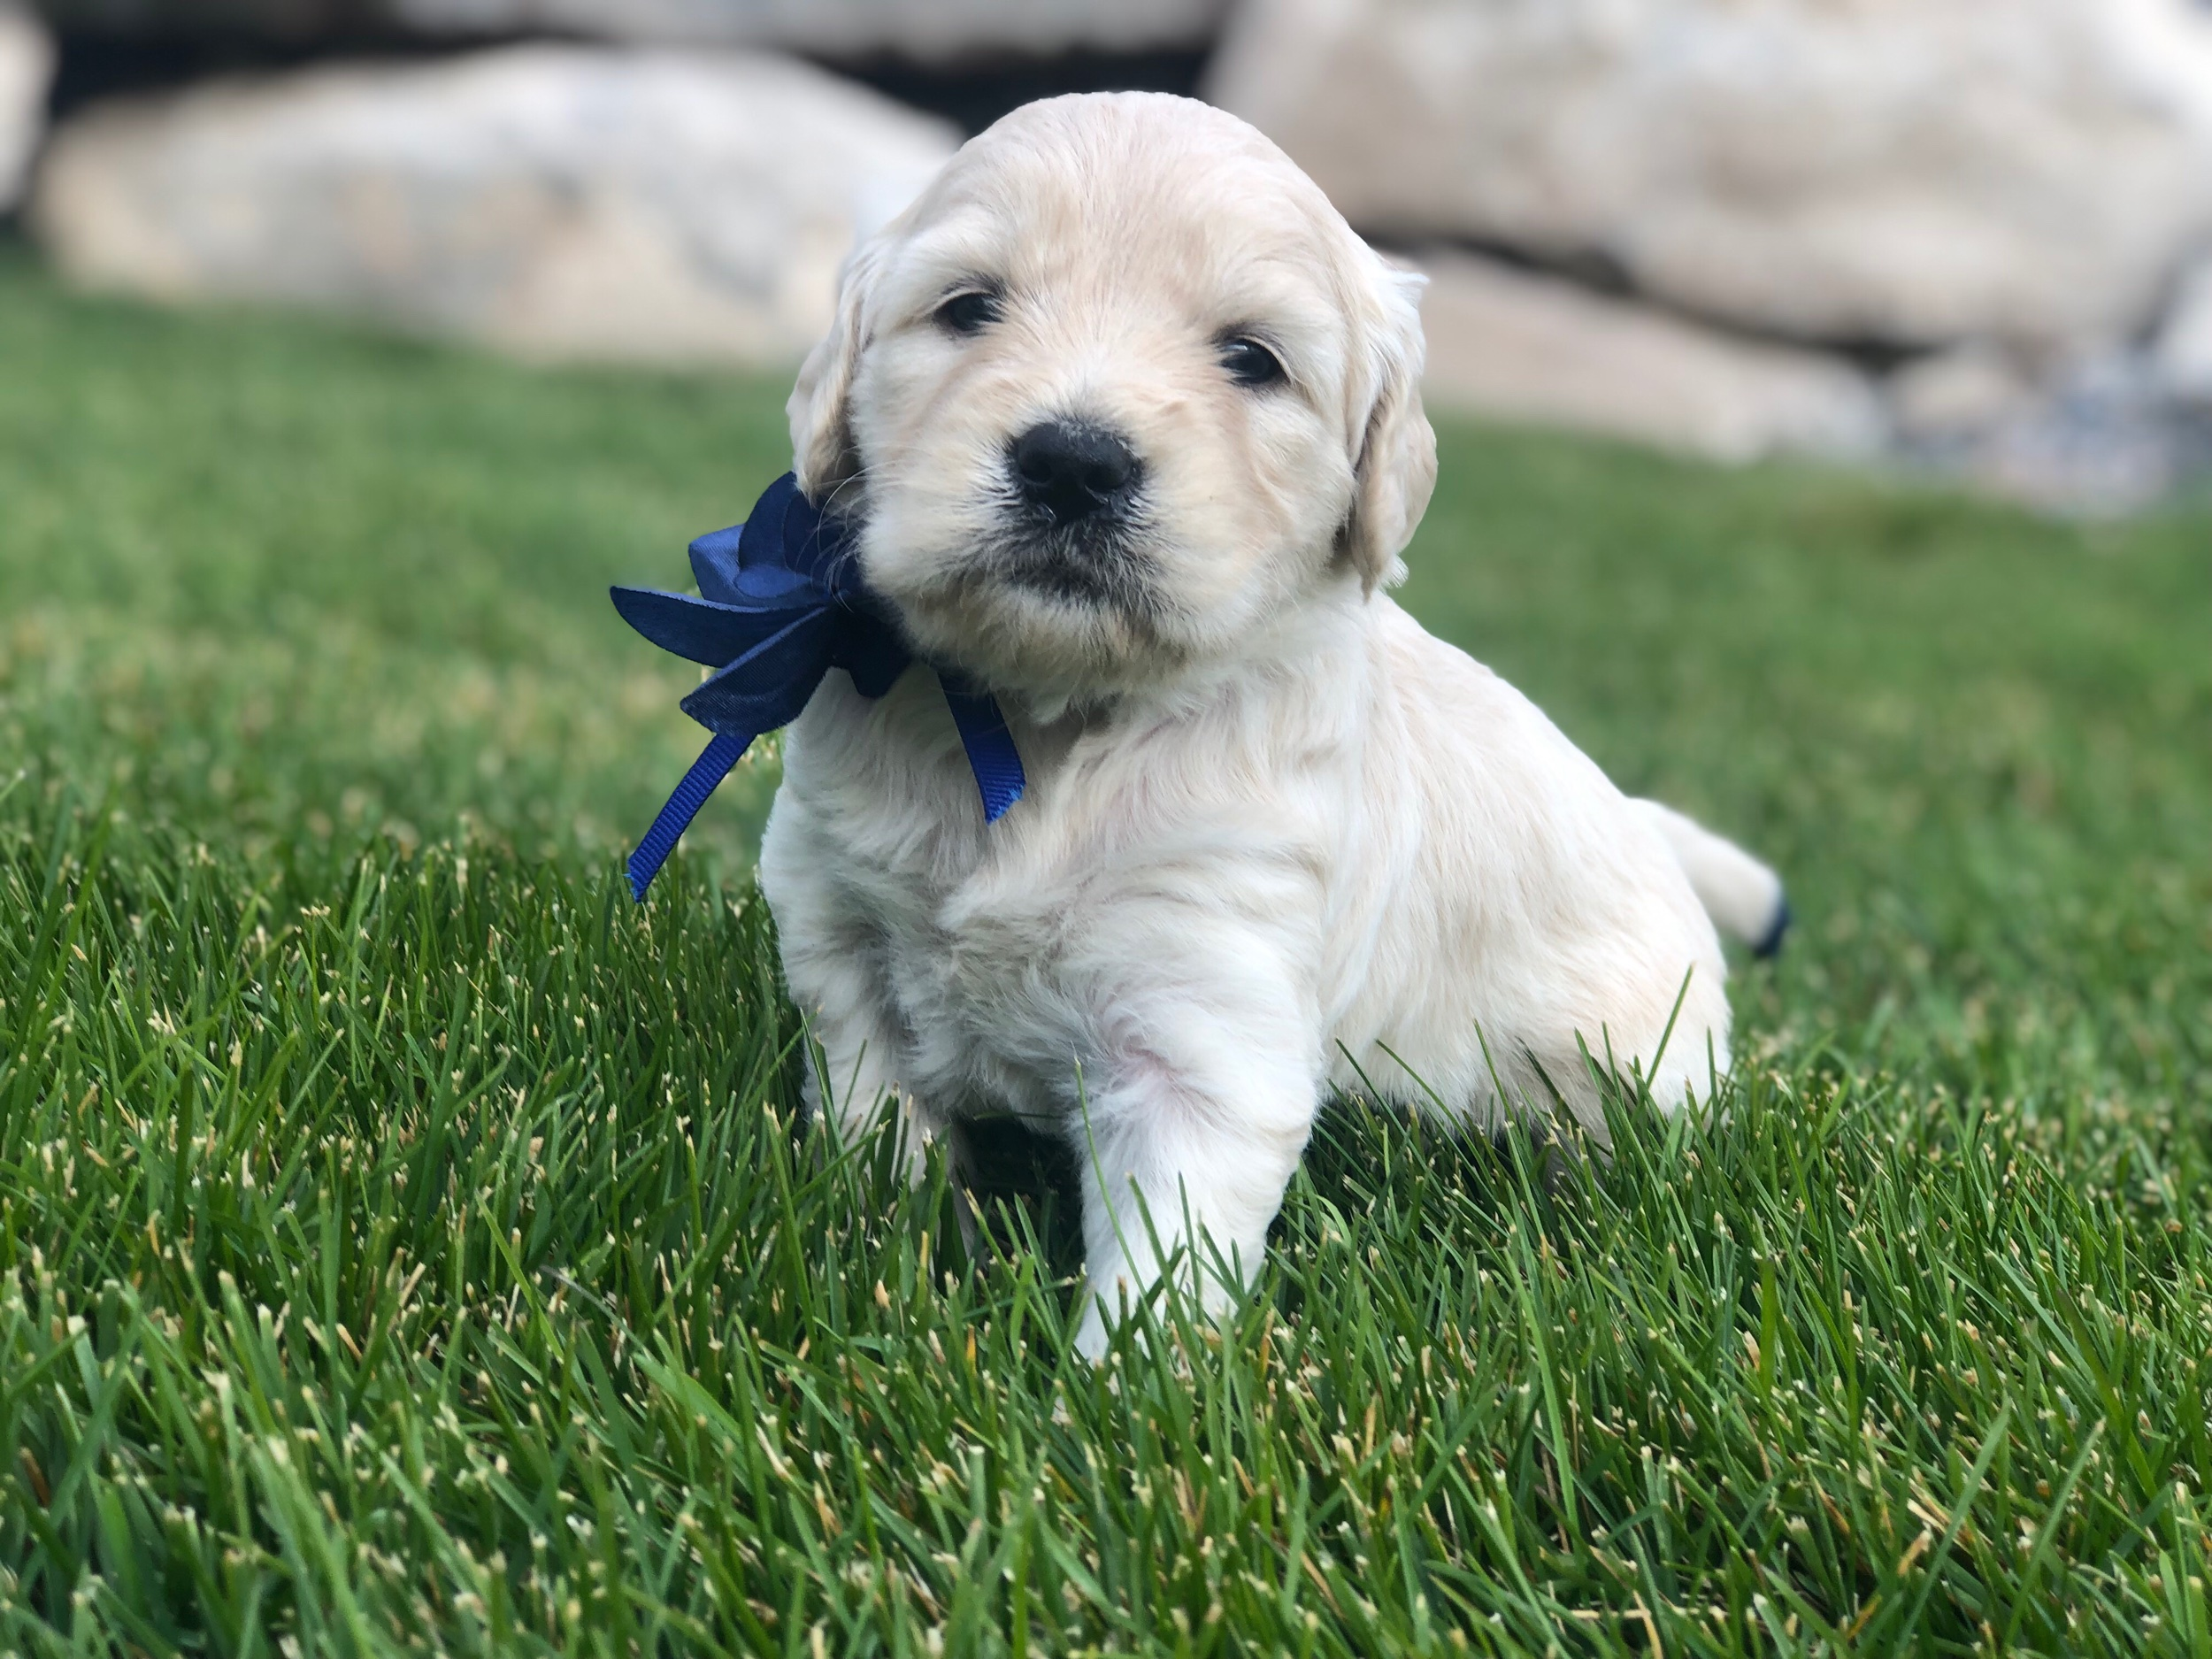 This is Camille a cream colored sister with a navy blue bow. She has a straight coat but it looks like it will be non-shedding as well. She weighs 3 lbs 12 oz.